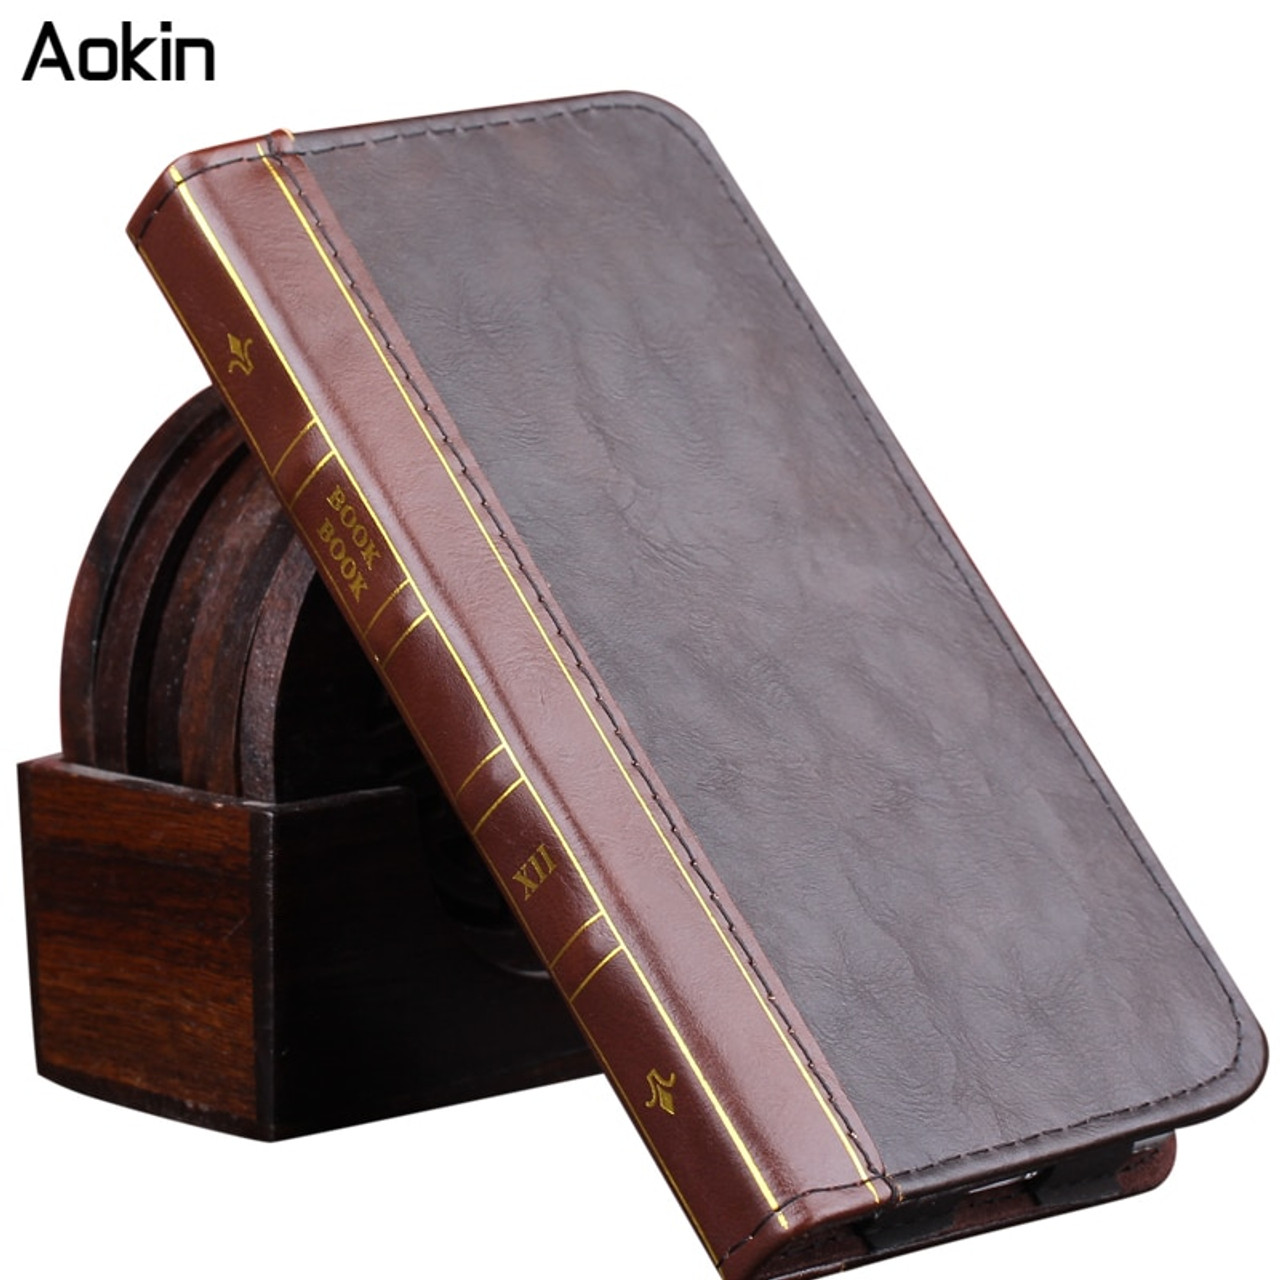 the latest 3bfc7 7c51c Aokin Case Book Pouch Wallet PU Leather For iPhone 7 7 Plus Cover Card  Luxury Flip Case Shockproof Phone Cases for iphone 6 6s